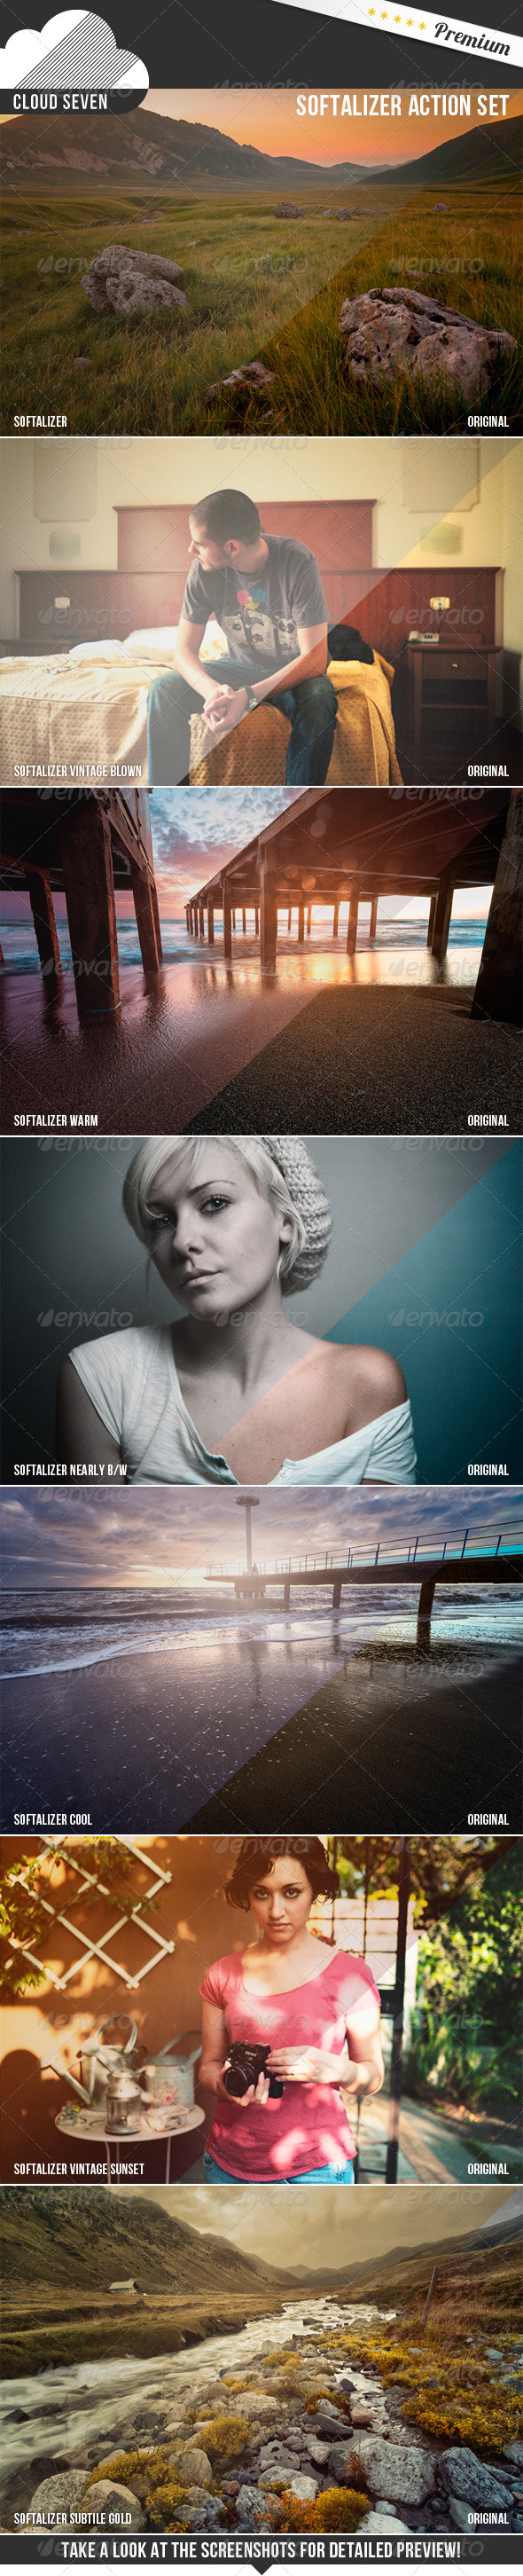 GraphicRiver Softalizer Action Set 5829129